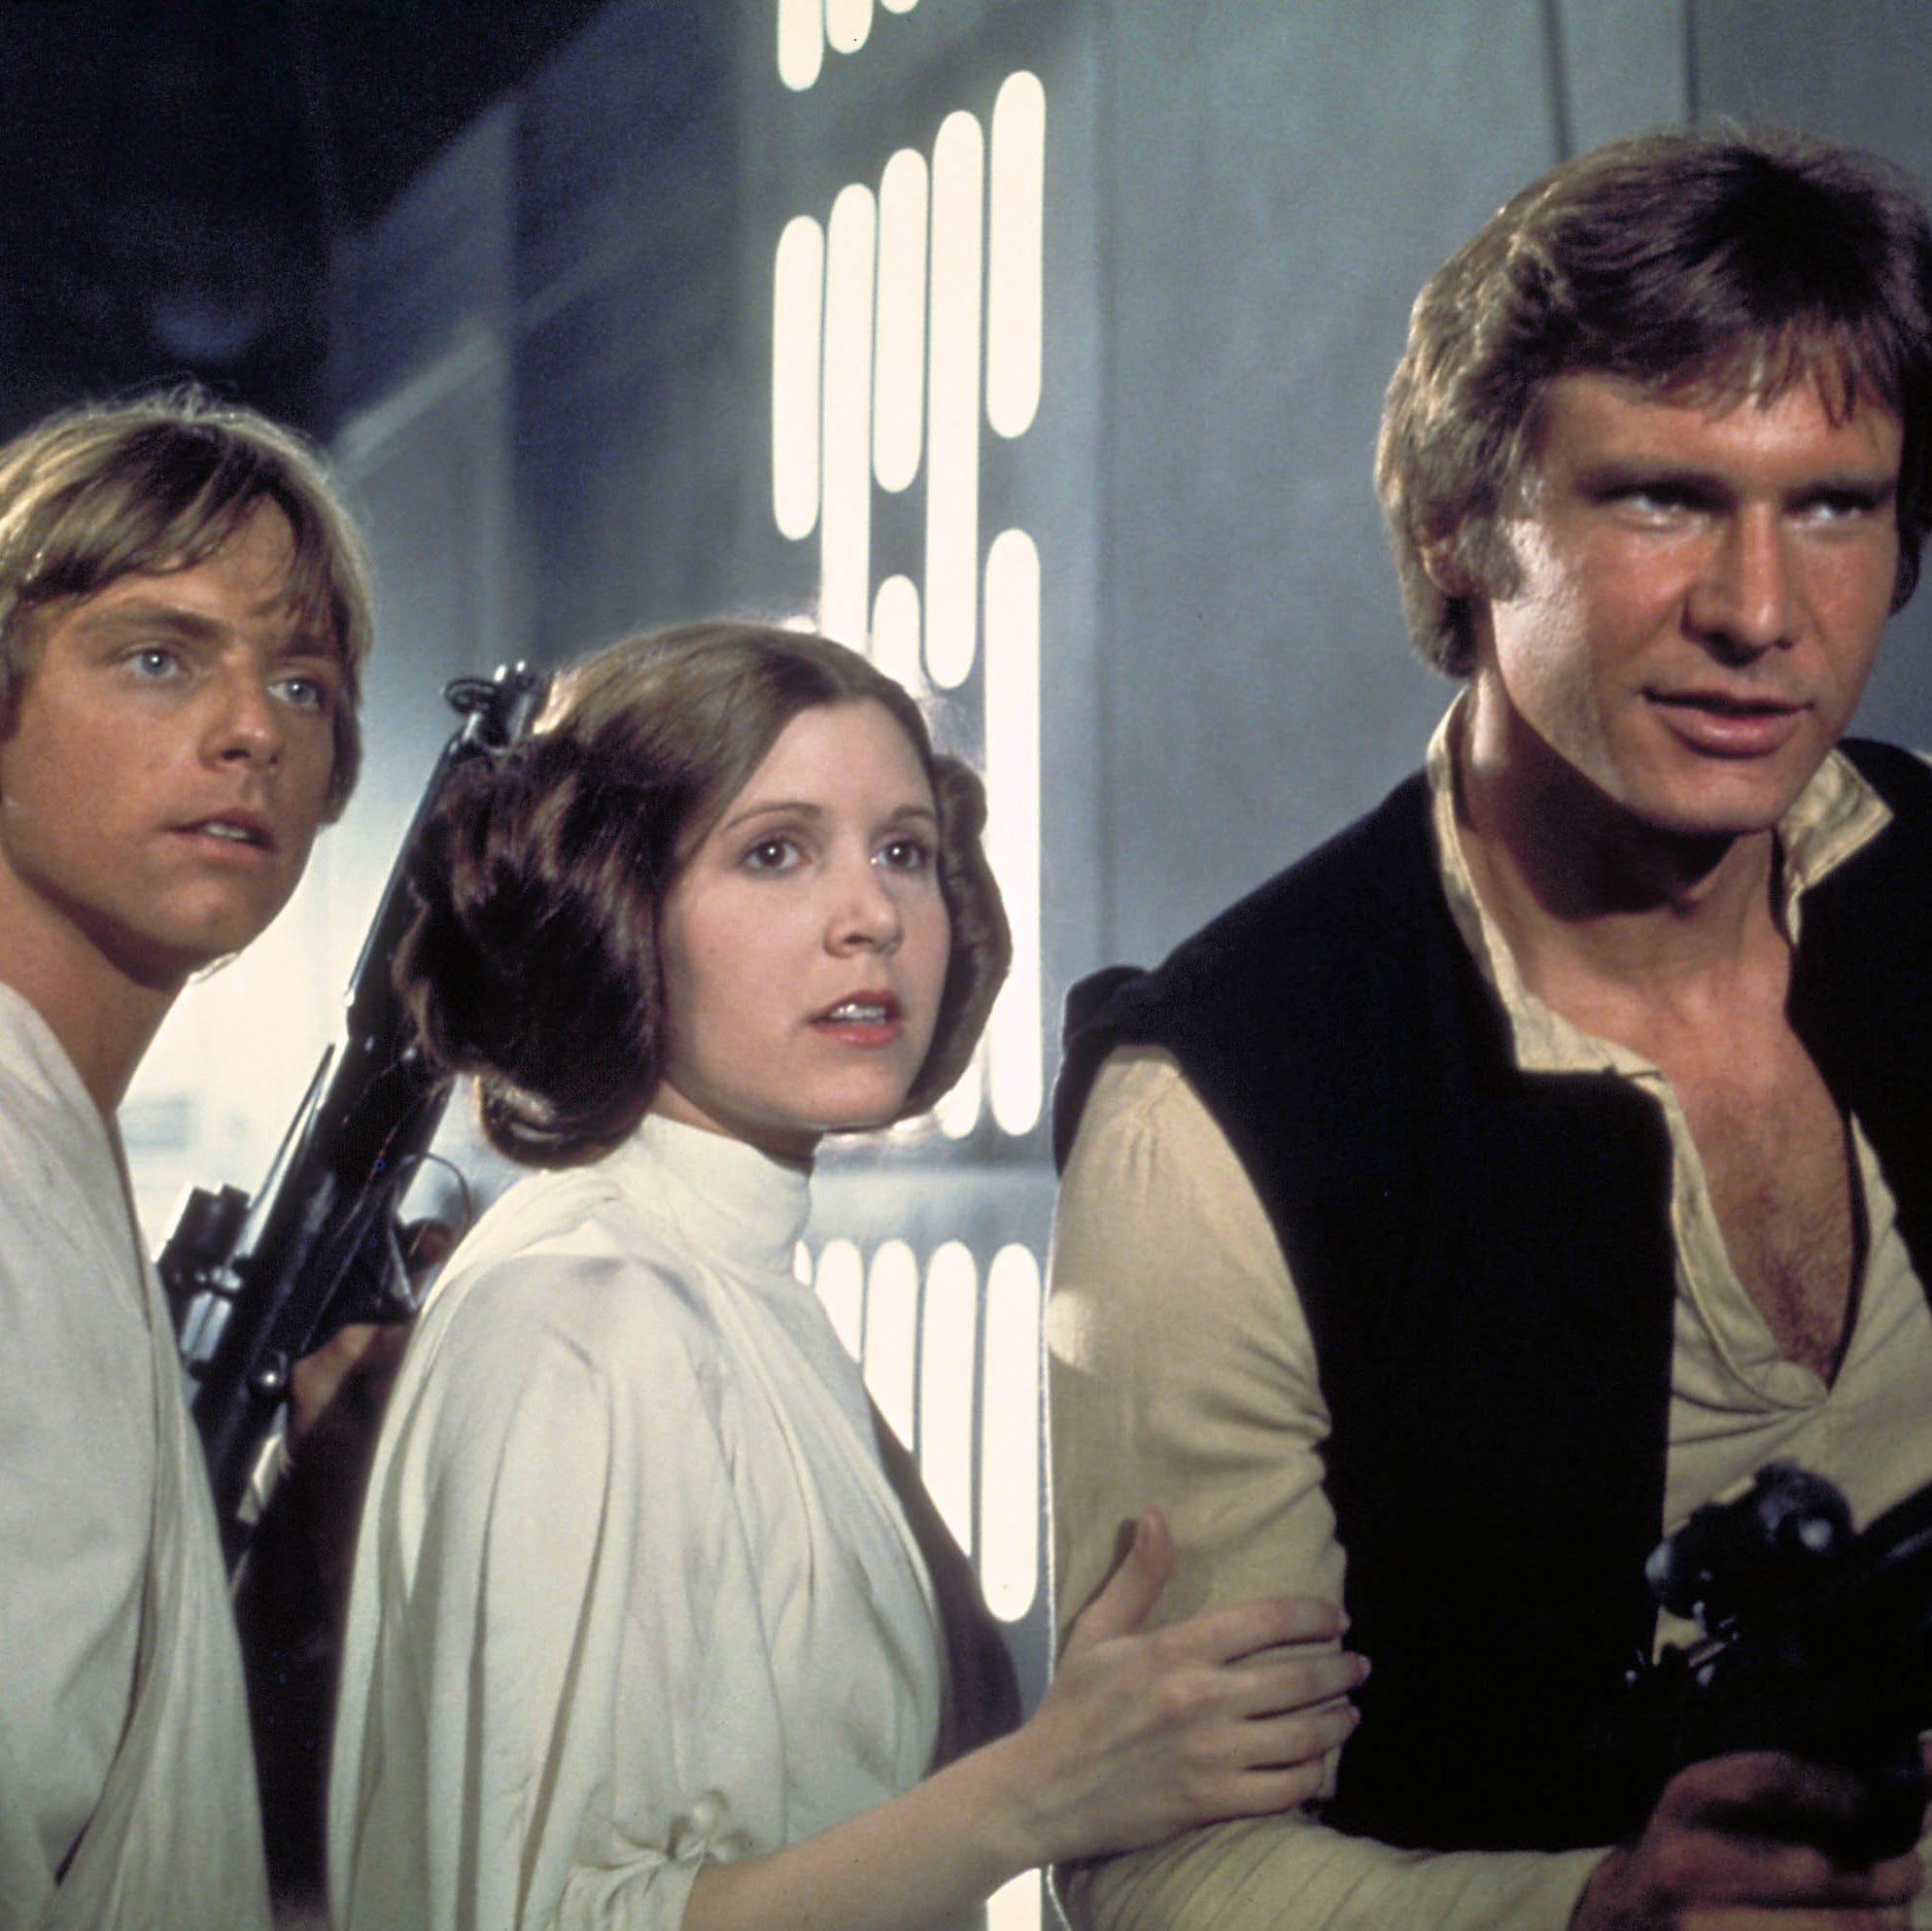 Star Wars quiz: Are you a Jedi, Sith or rebel?